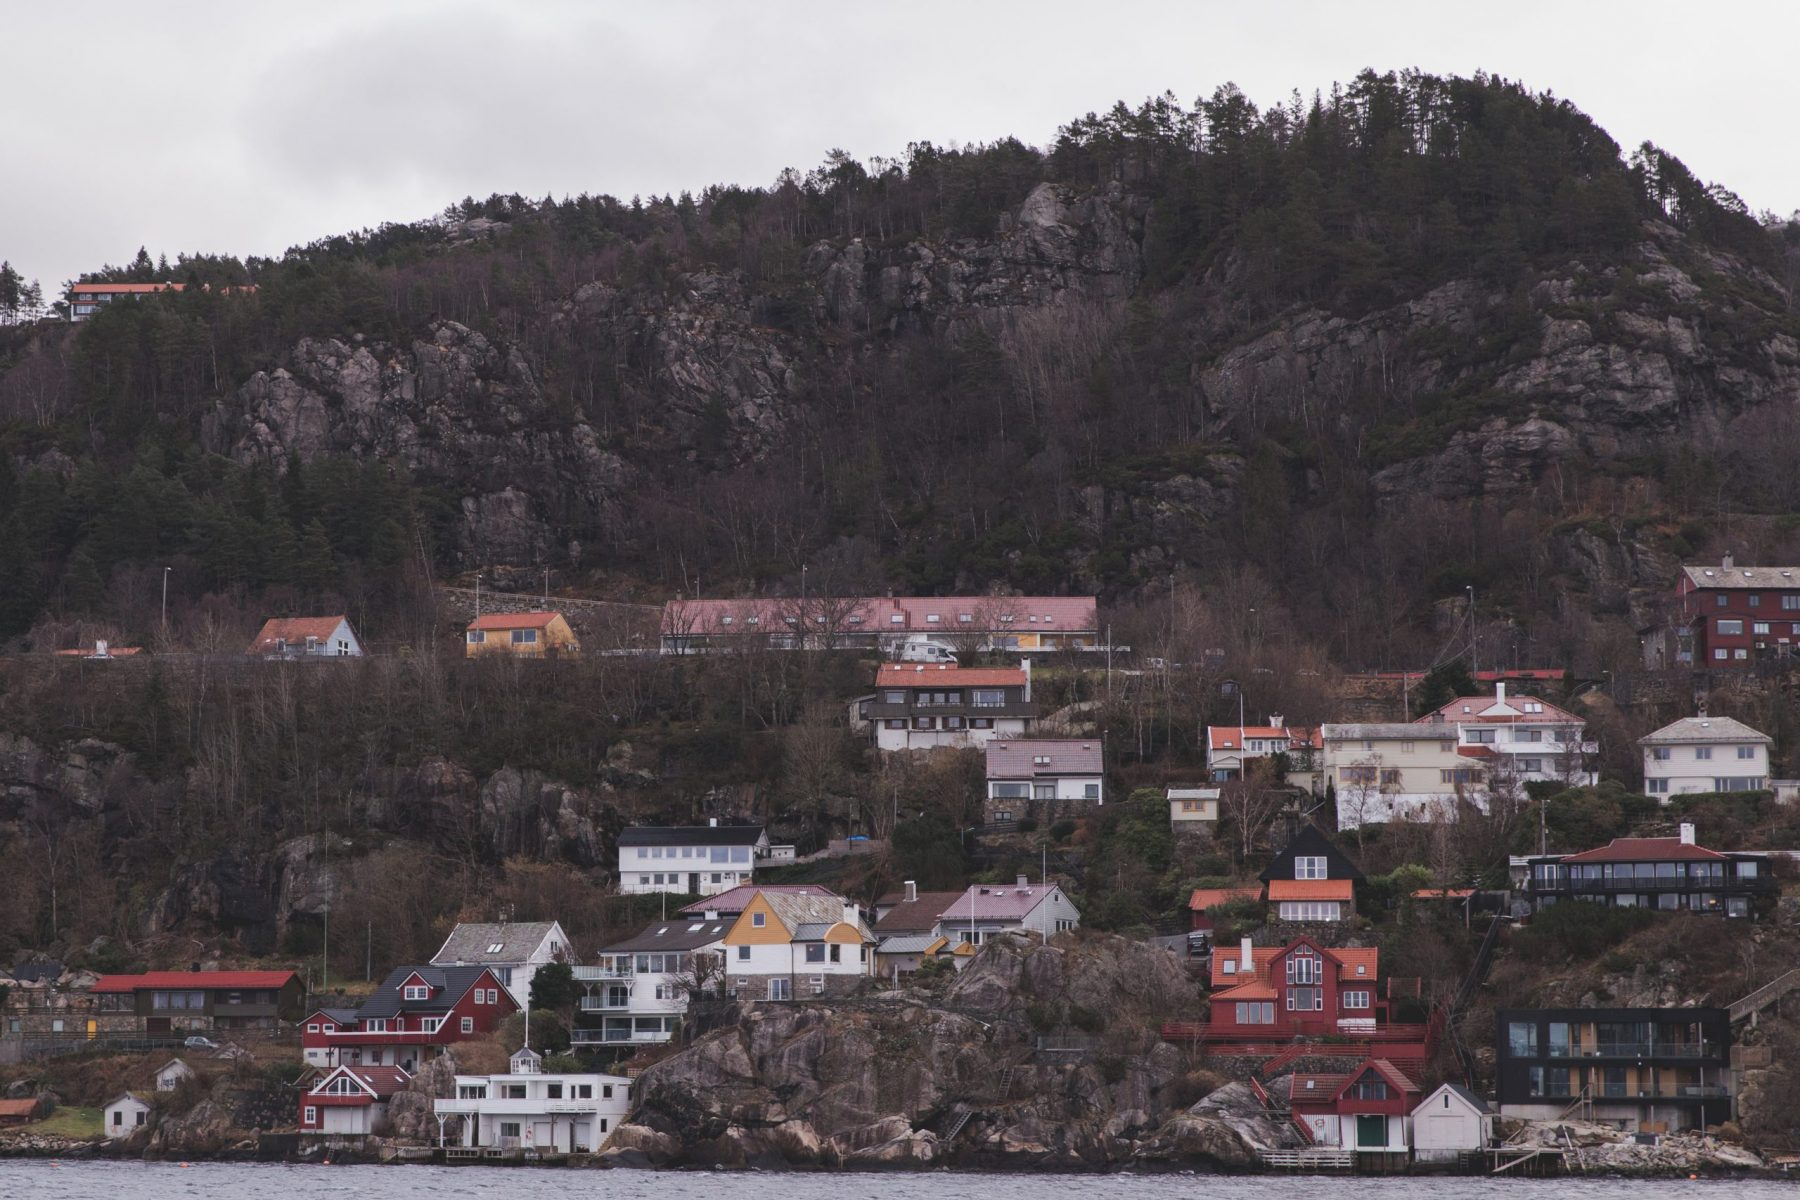 View of mountains and houses on the shore on a fjord tour in the Osterfjord from Bergen, Norway